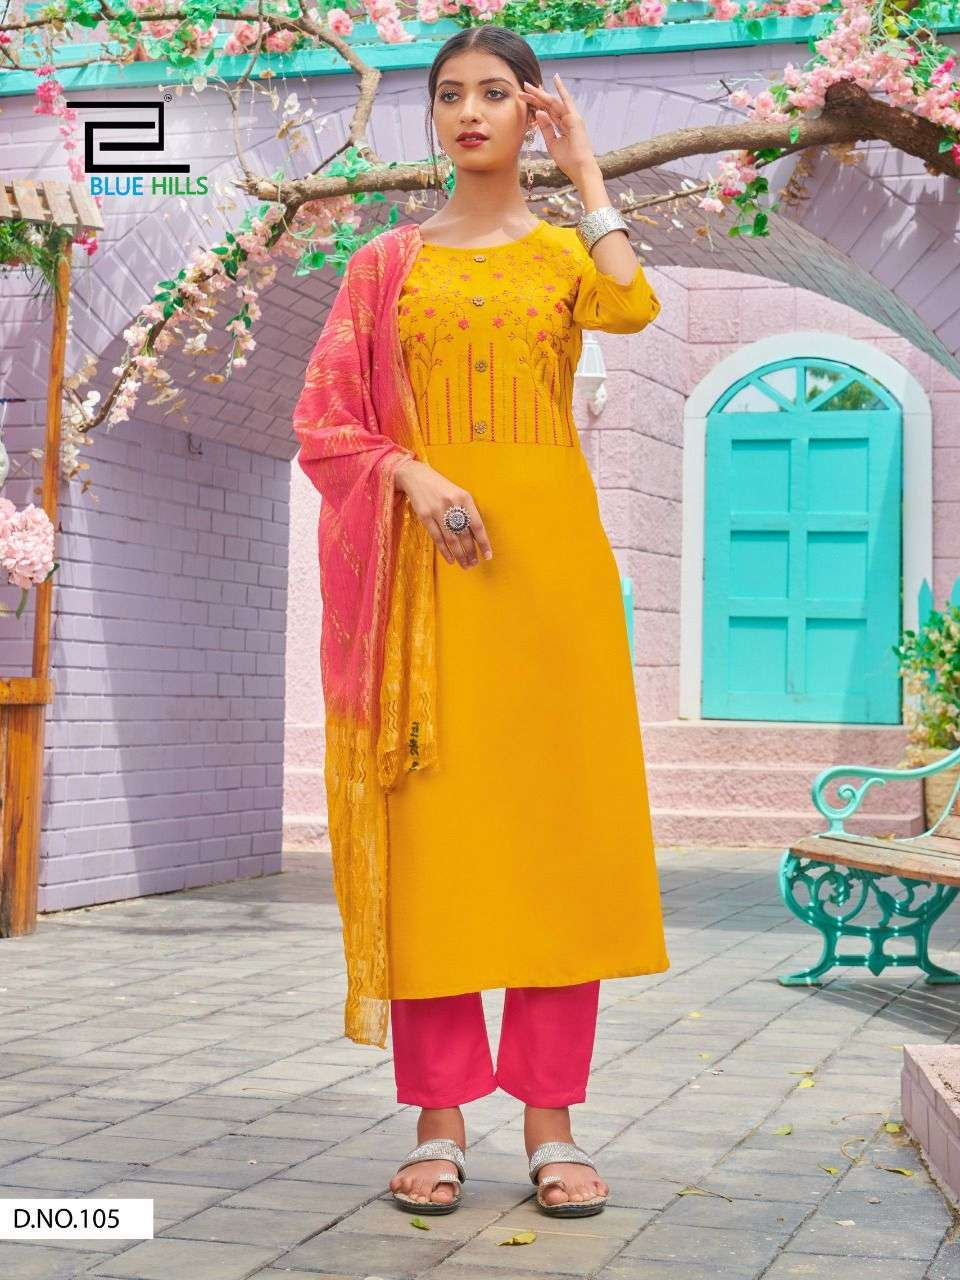 Blue Hills New Generation Rayon with embroidery work Kurti With Bottom Dupatta Collection